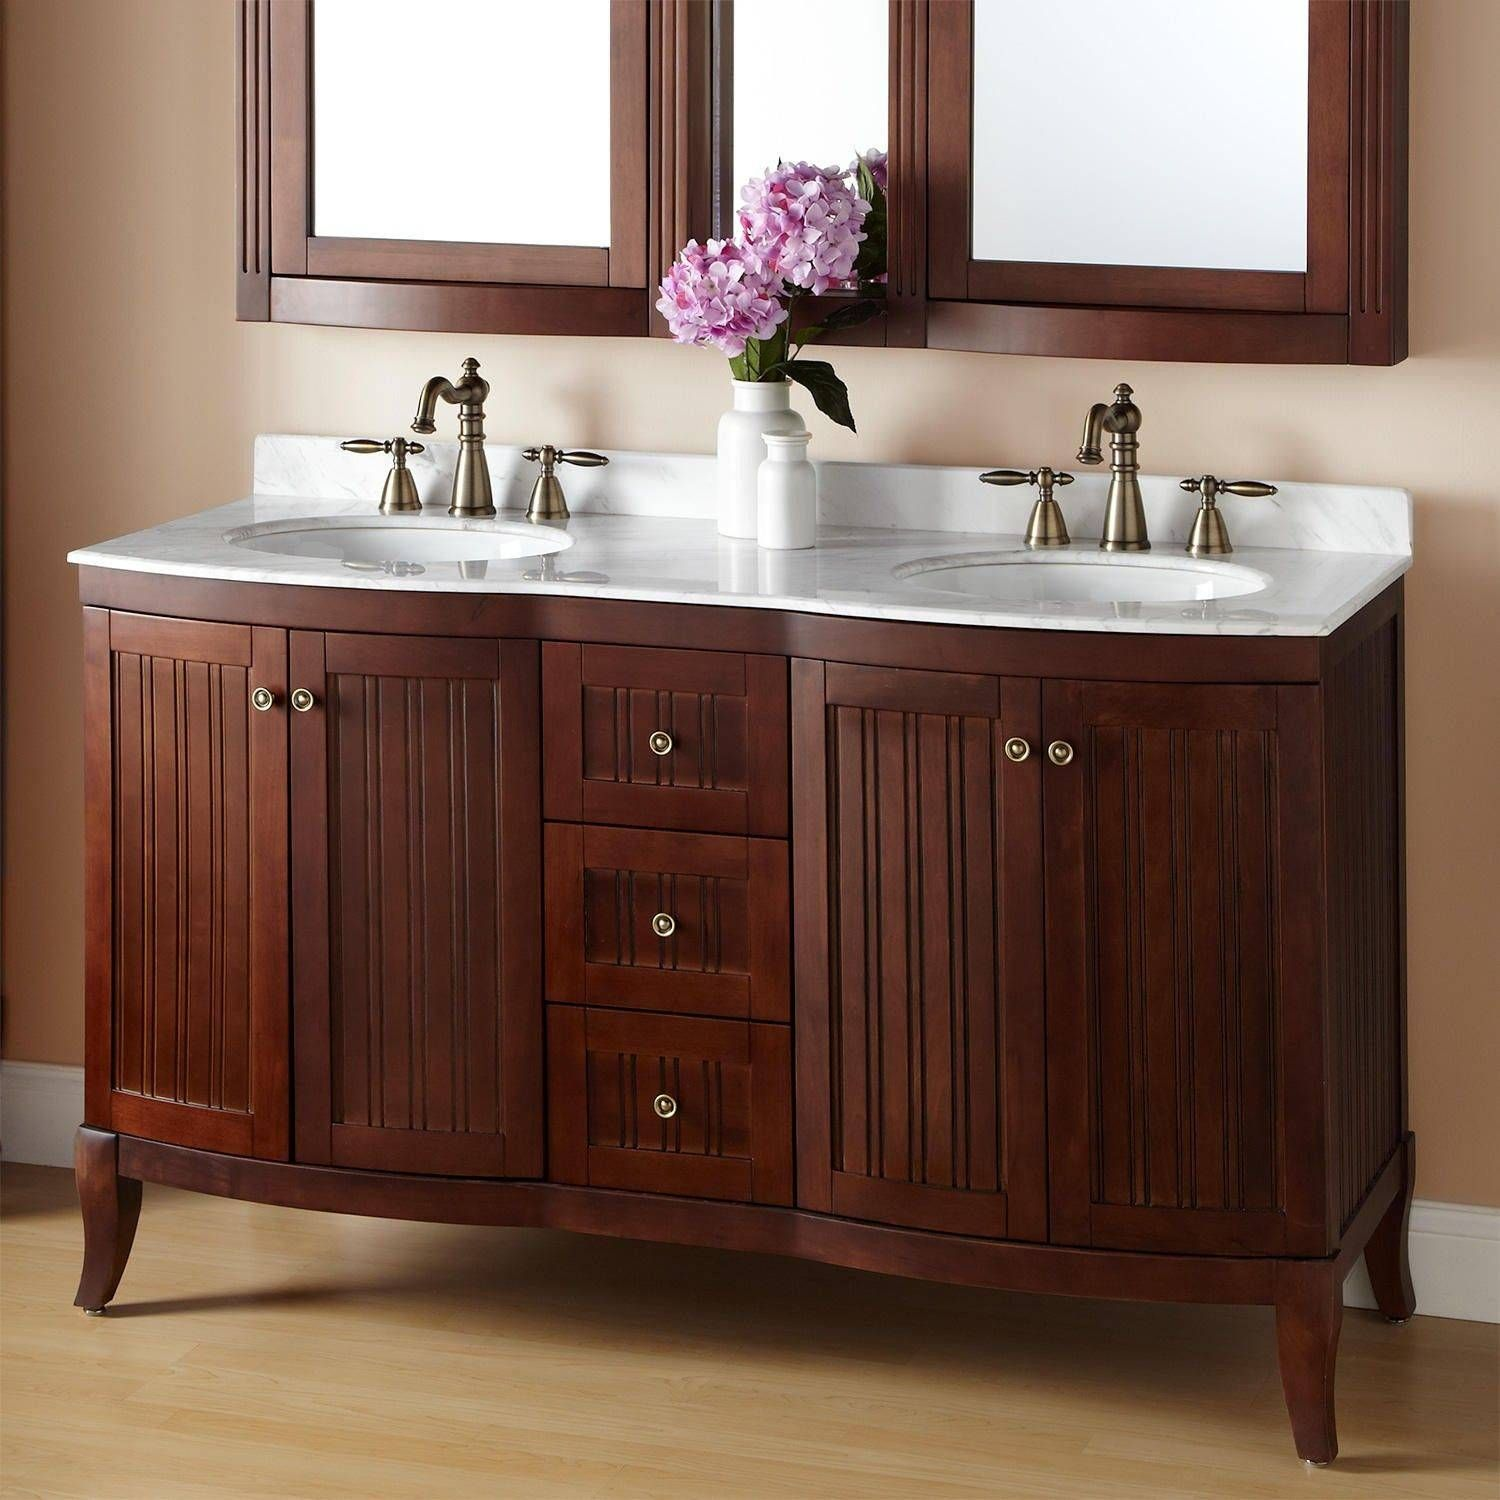 Double Vanity Bathroom Double Vanity Bathroom 48 Inch Bathroom